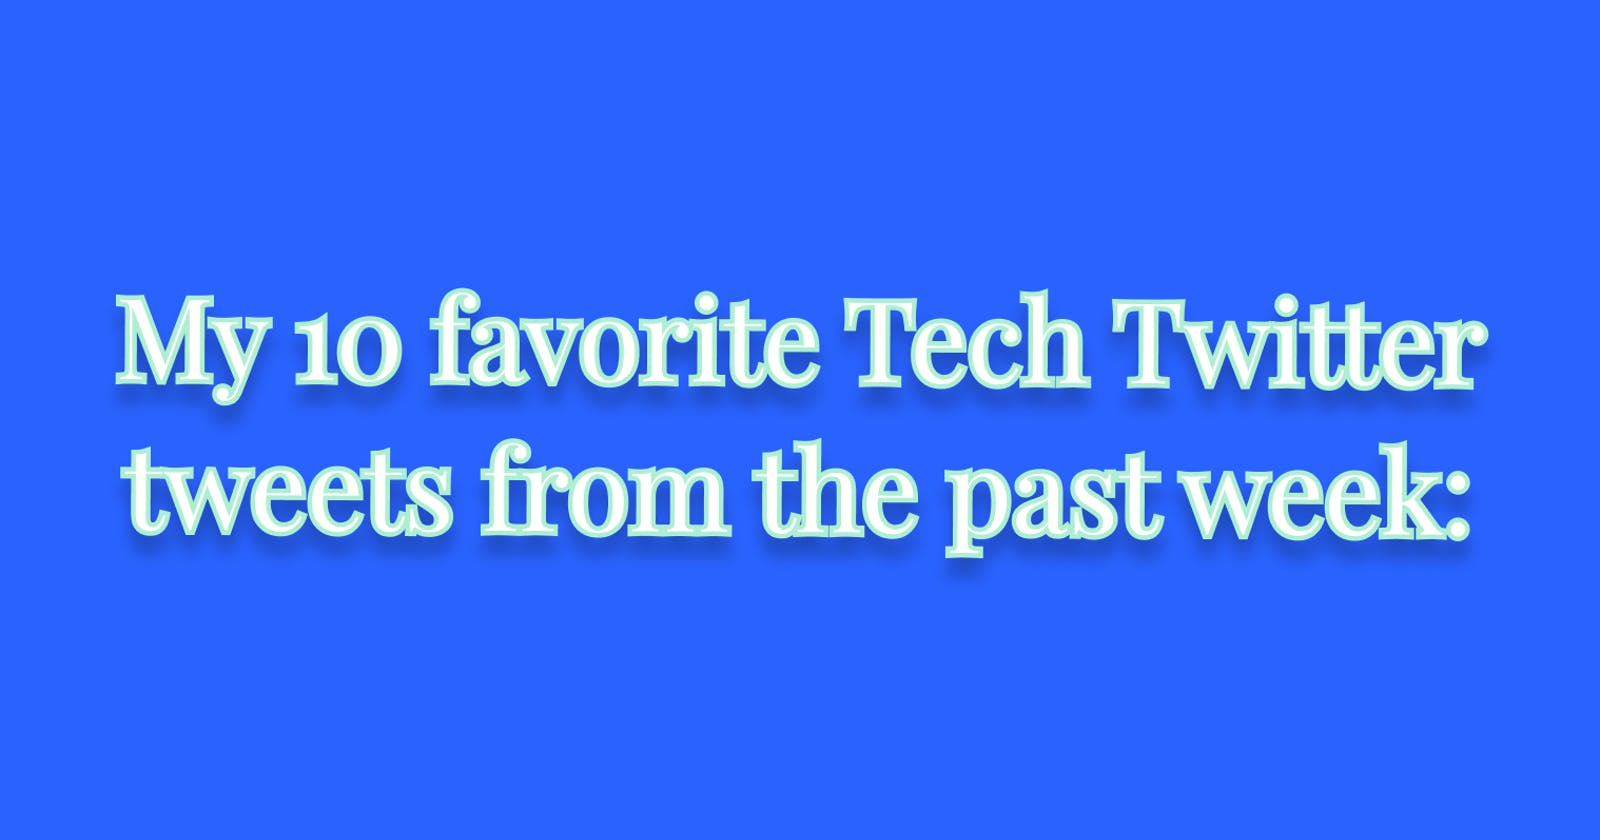 My 10 favorite Tech Twitter tweets from the past week